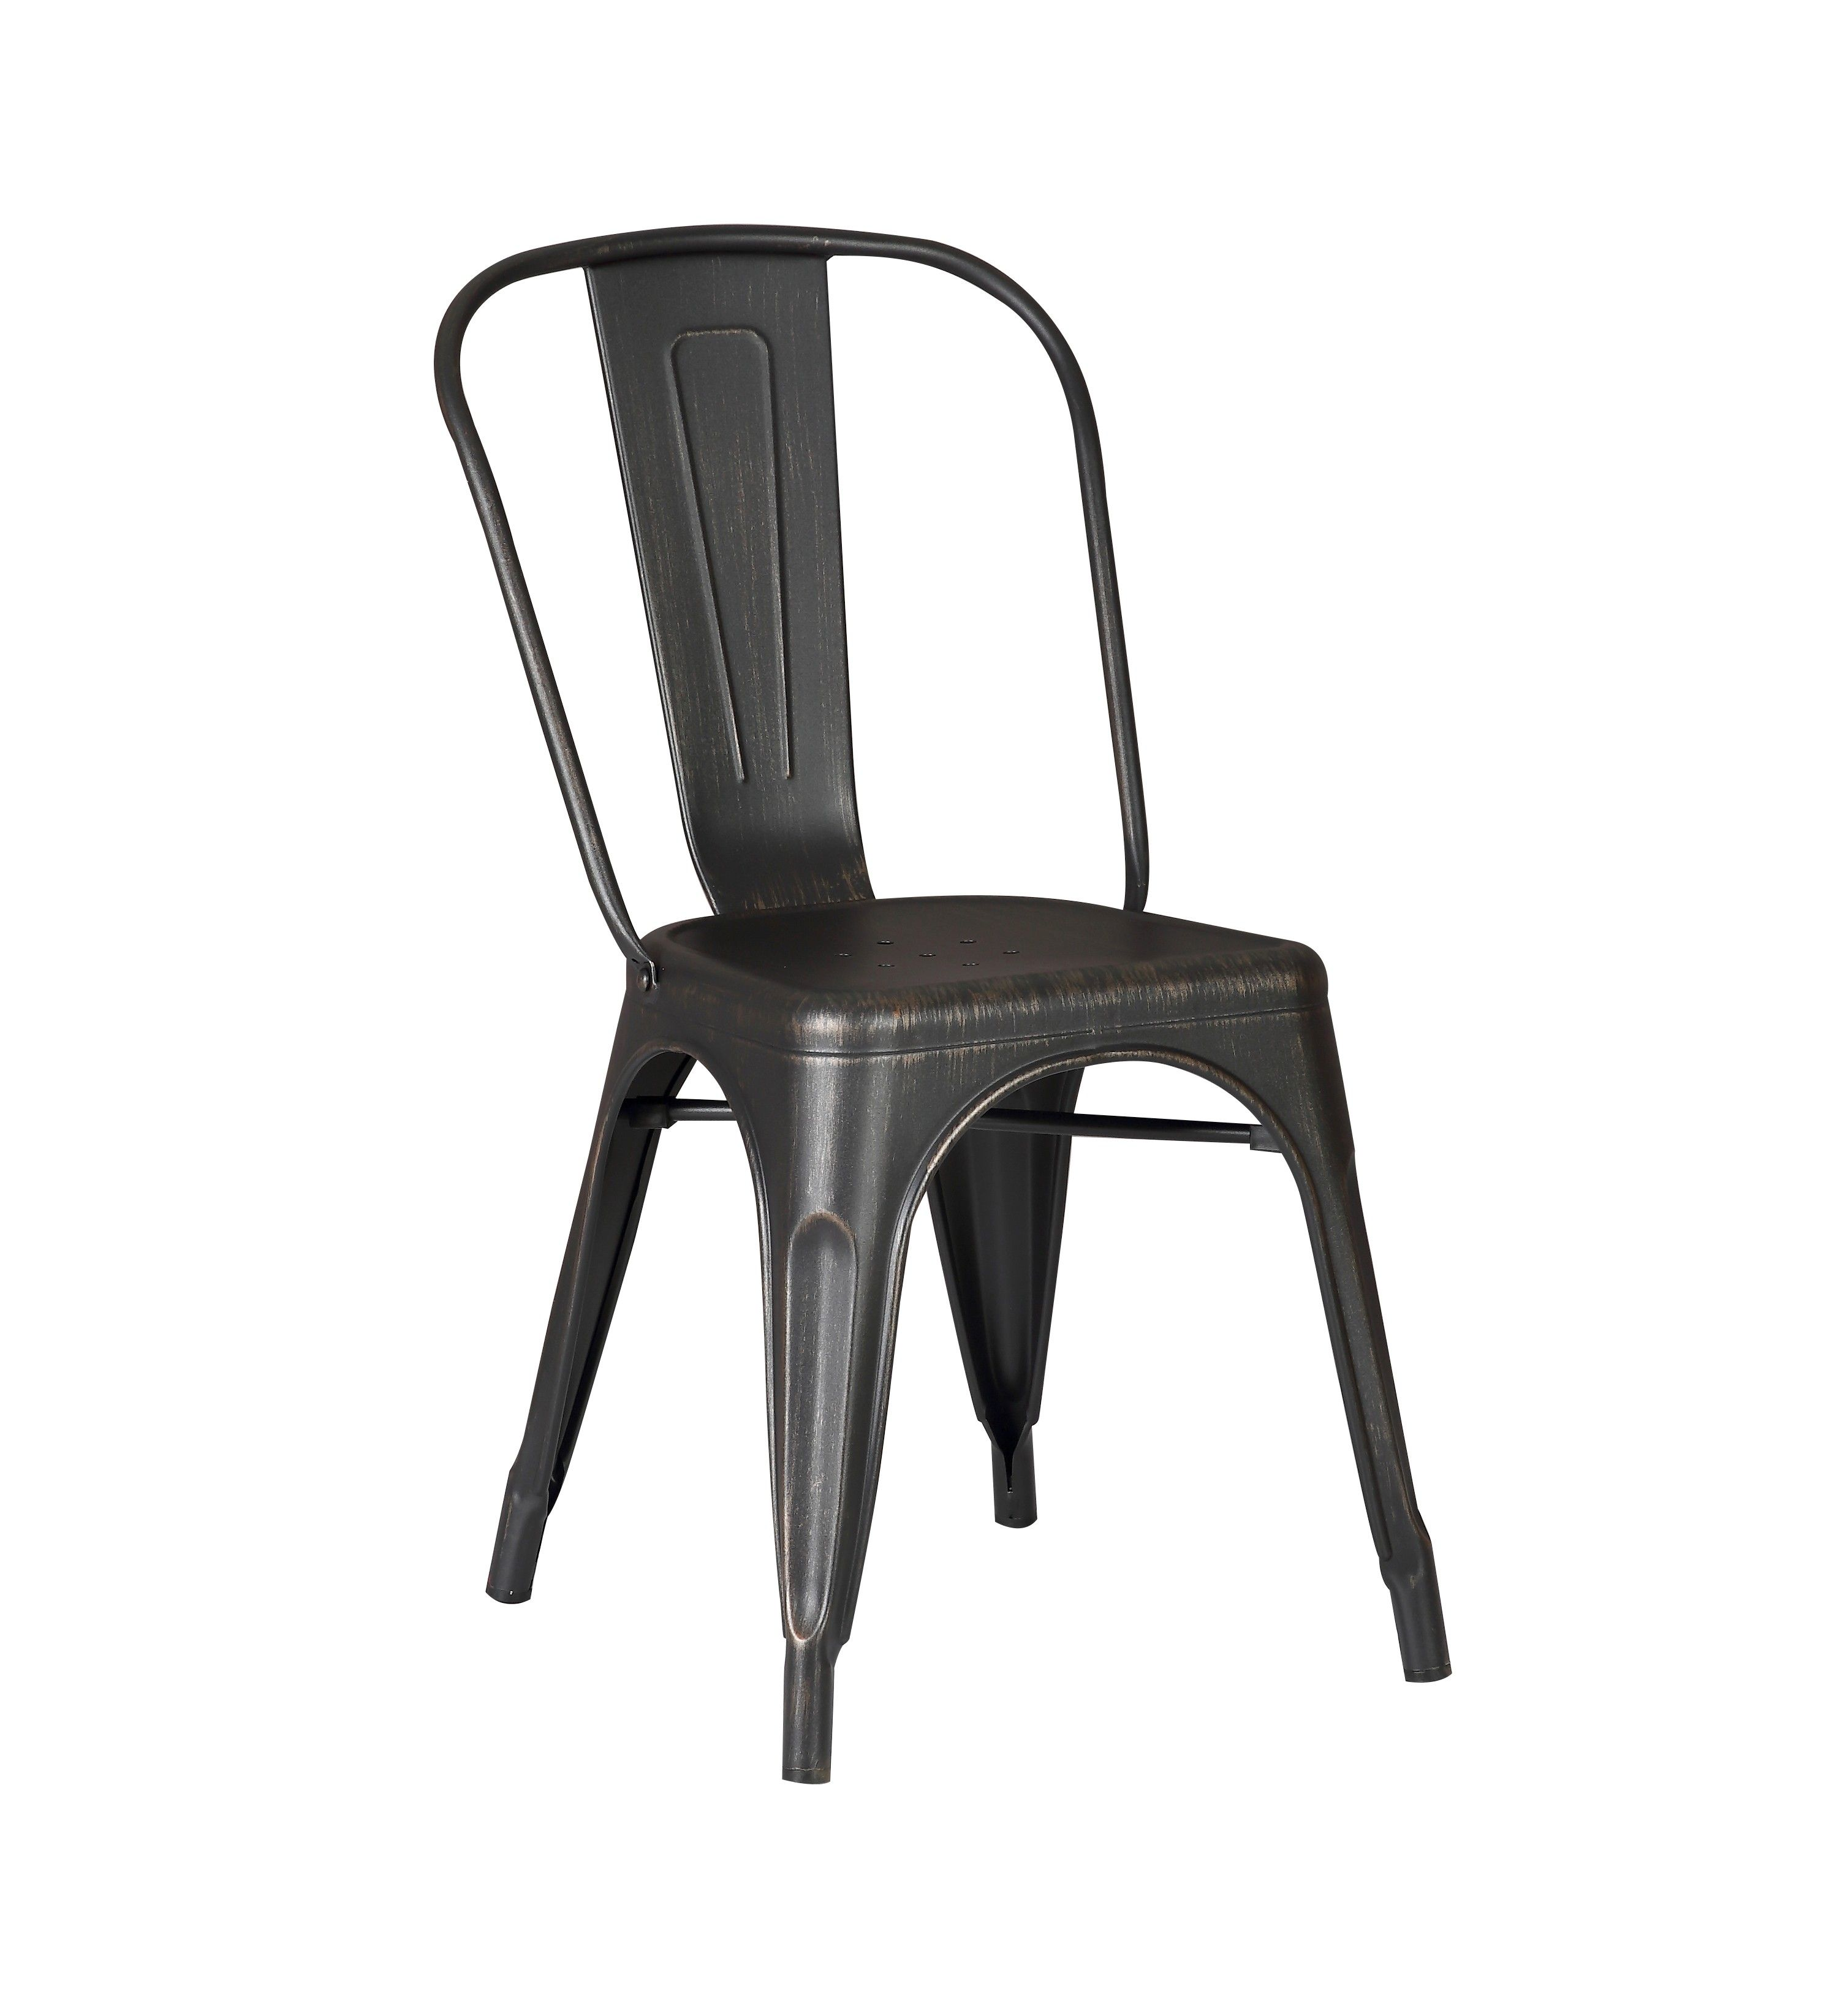 black metal dining chairs. Distressed Black Metal Dining Chair 18-inch Seat Height With Back, Set Of 2 Chairs D